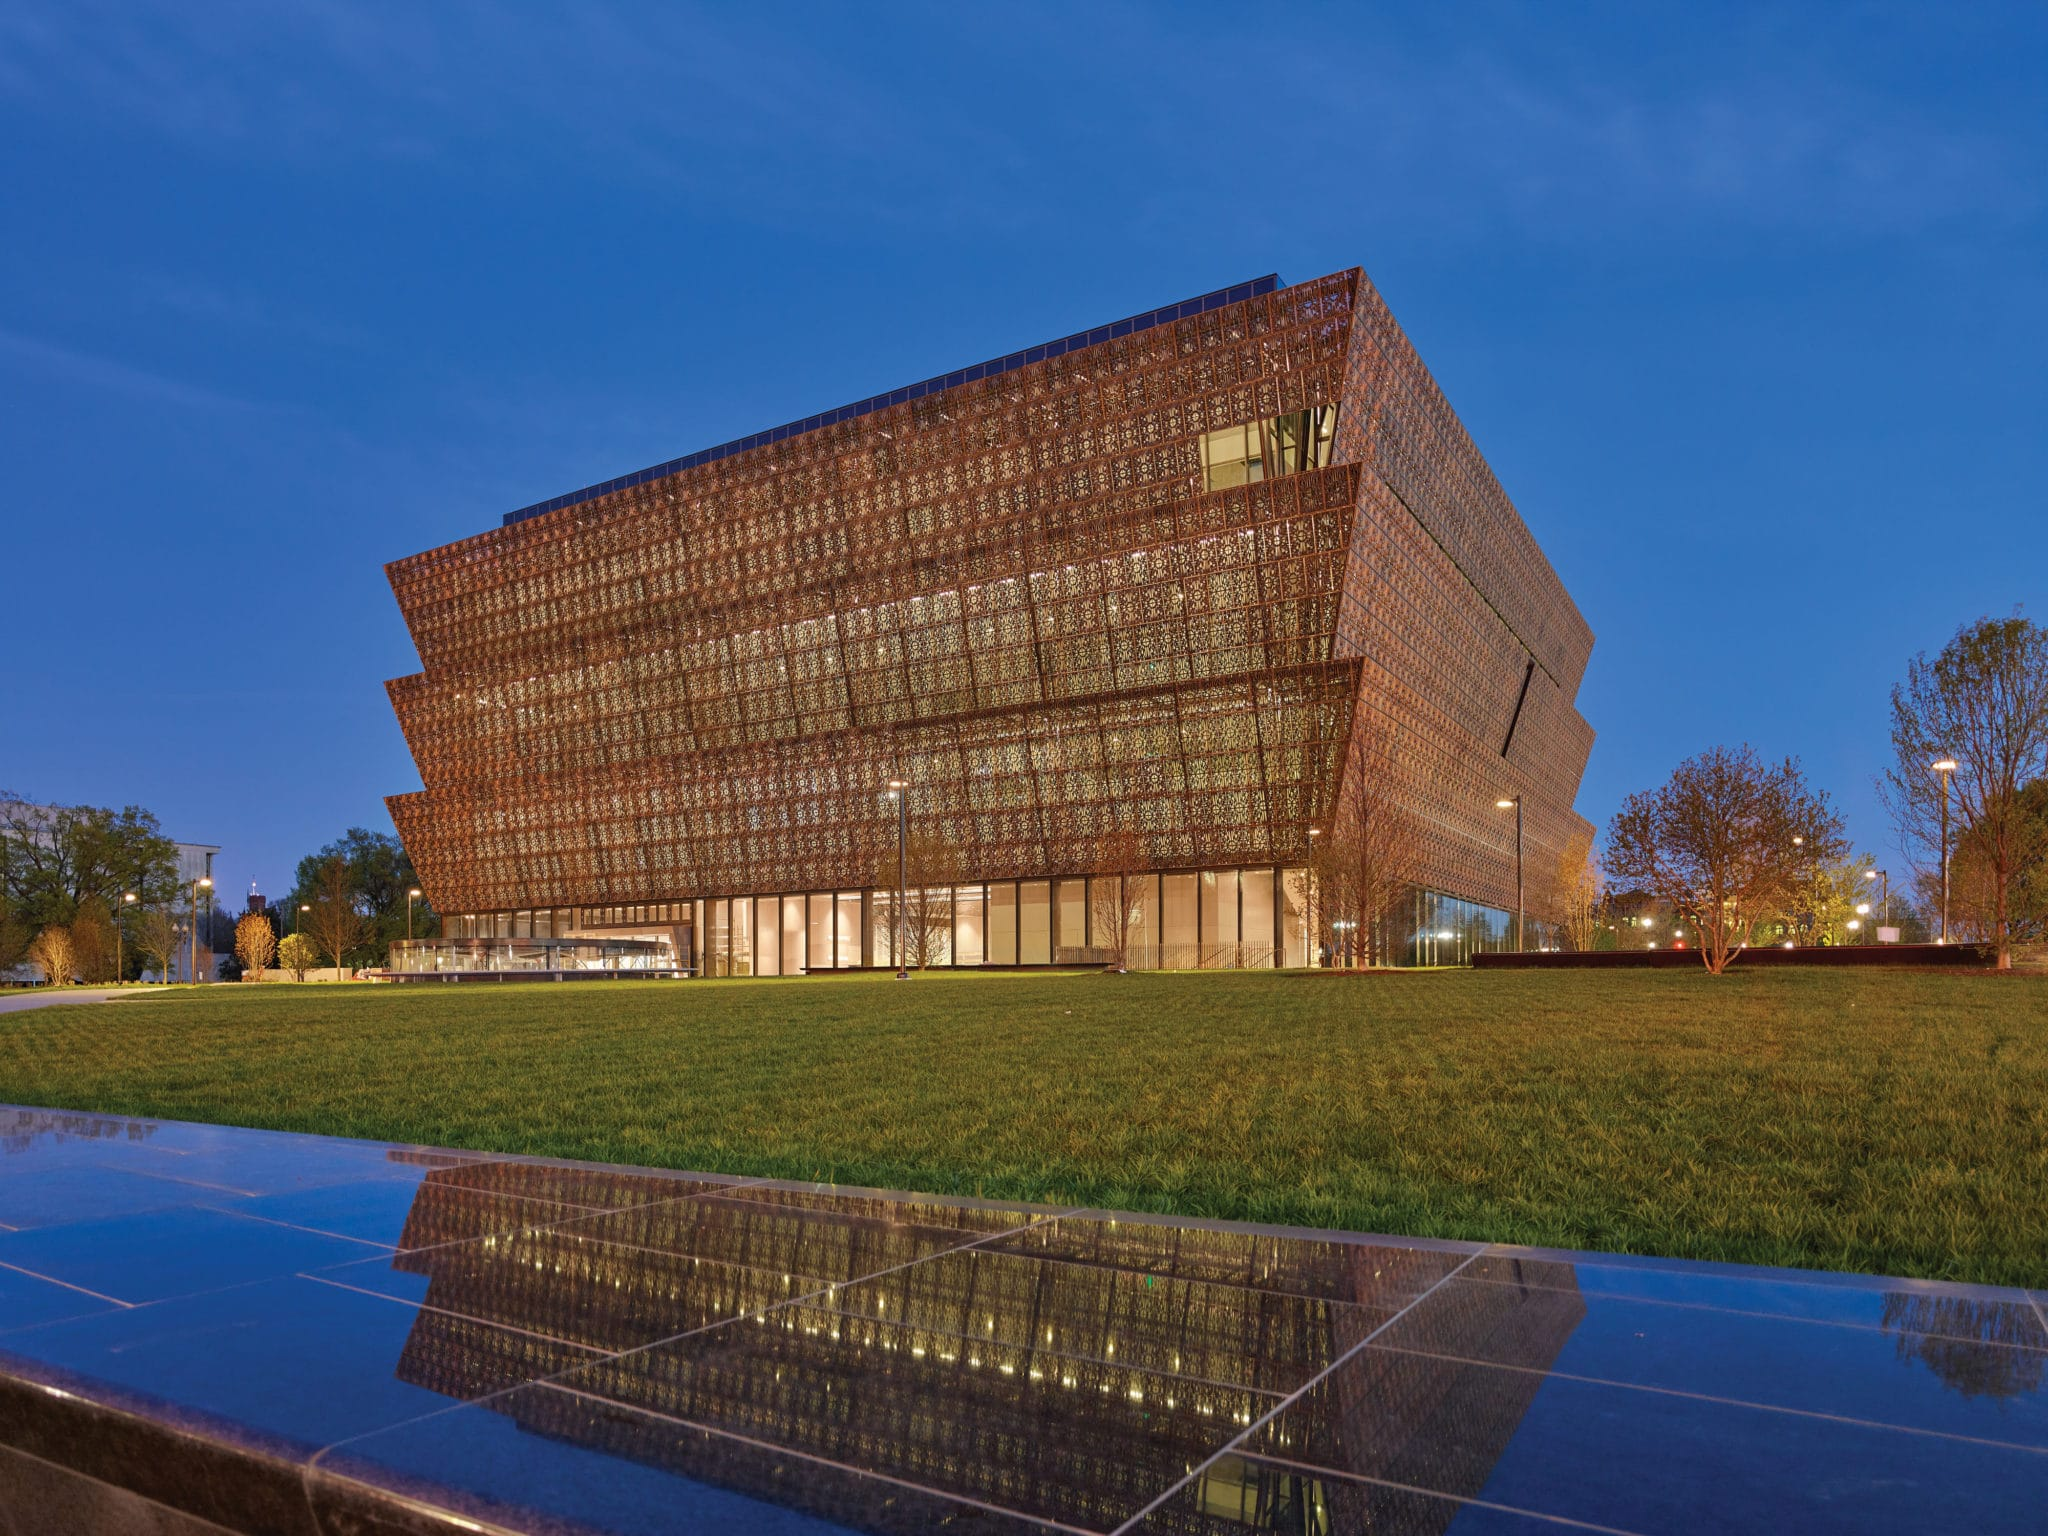 NMAAHC Exterior (Credit to Smithsonian Institution, National Museum of African American History and Culture Architectural Photrography/Douglas Remley - Smithsonian)